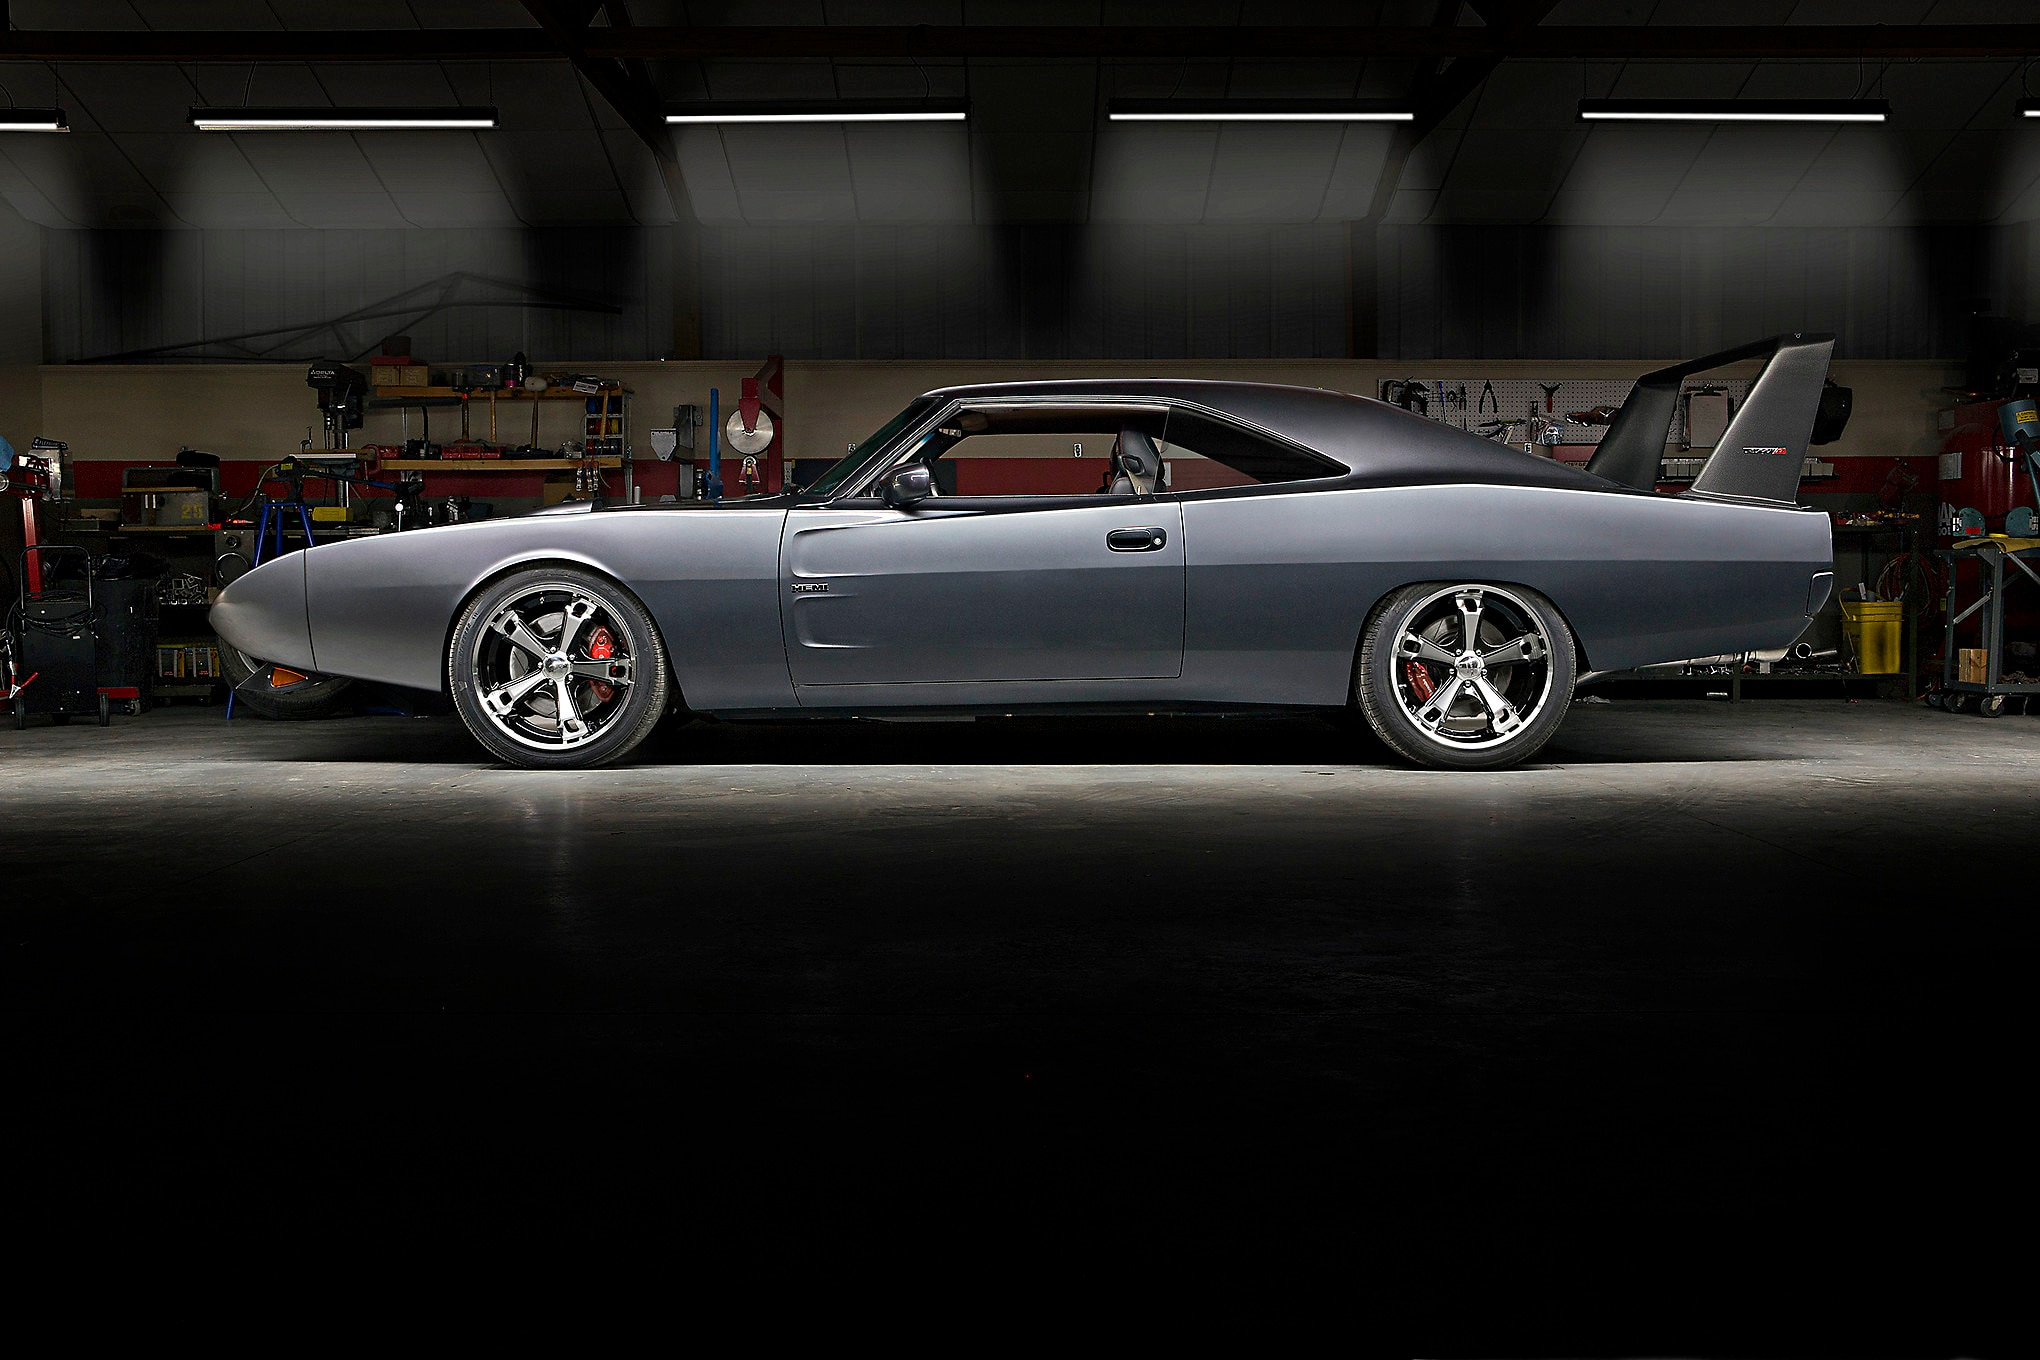 Most home-built fusions of old and new are abominations-if they're even finished at all. Steve Mirabelli's '69 Dodge Daytona clone-actually a 2006 Dodge Charger SRT8 under the skin-is a real work of art.